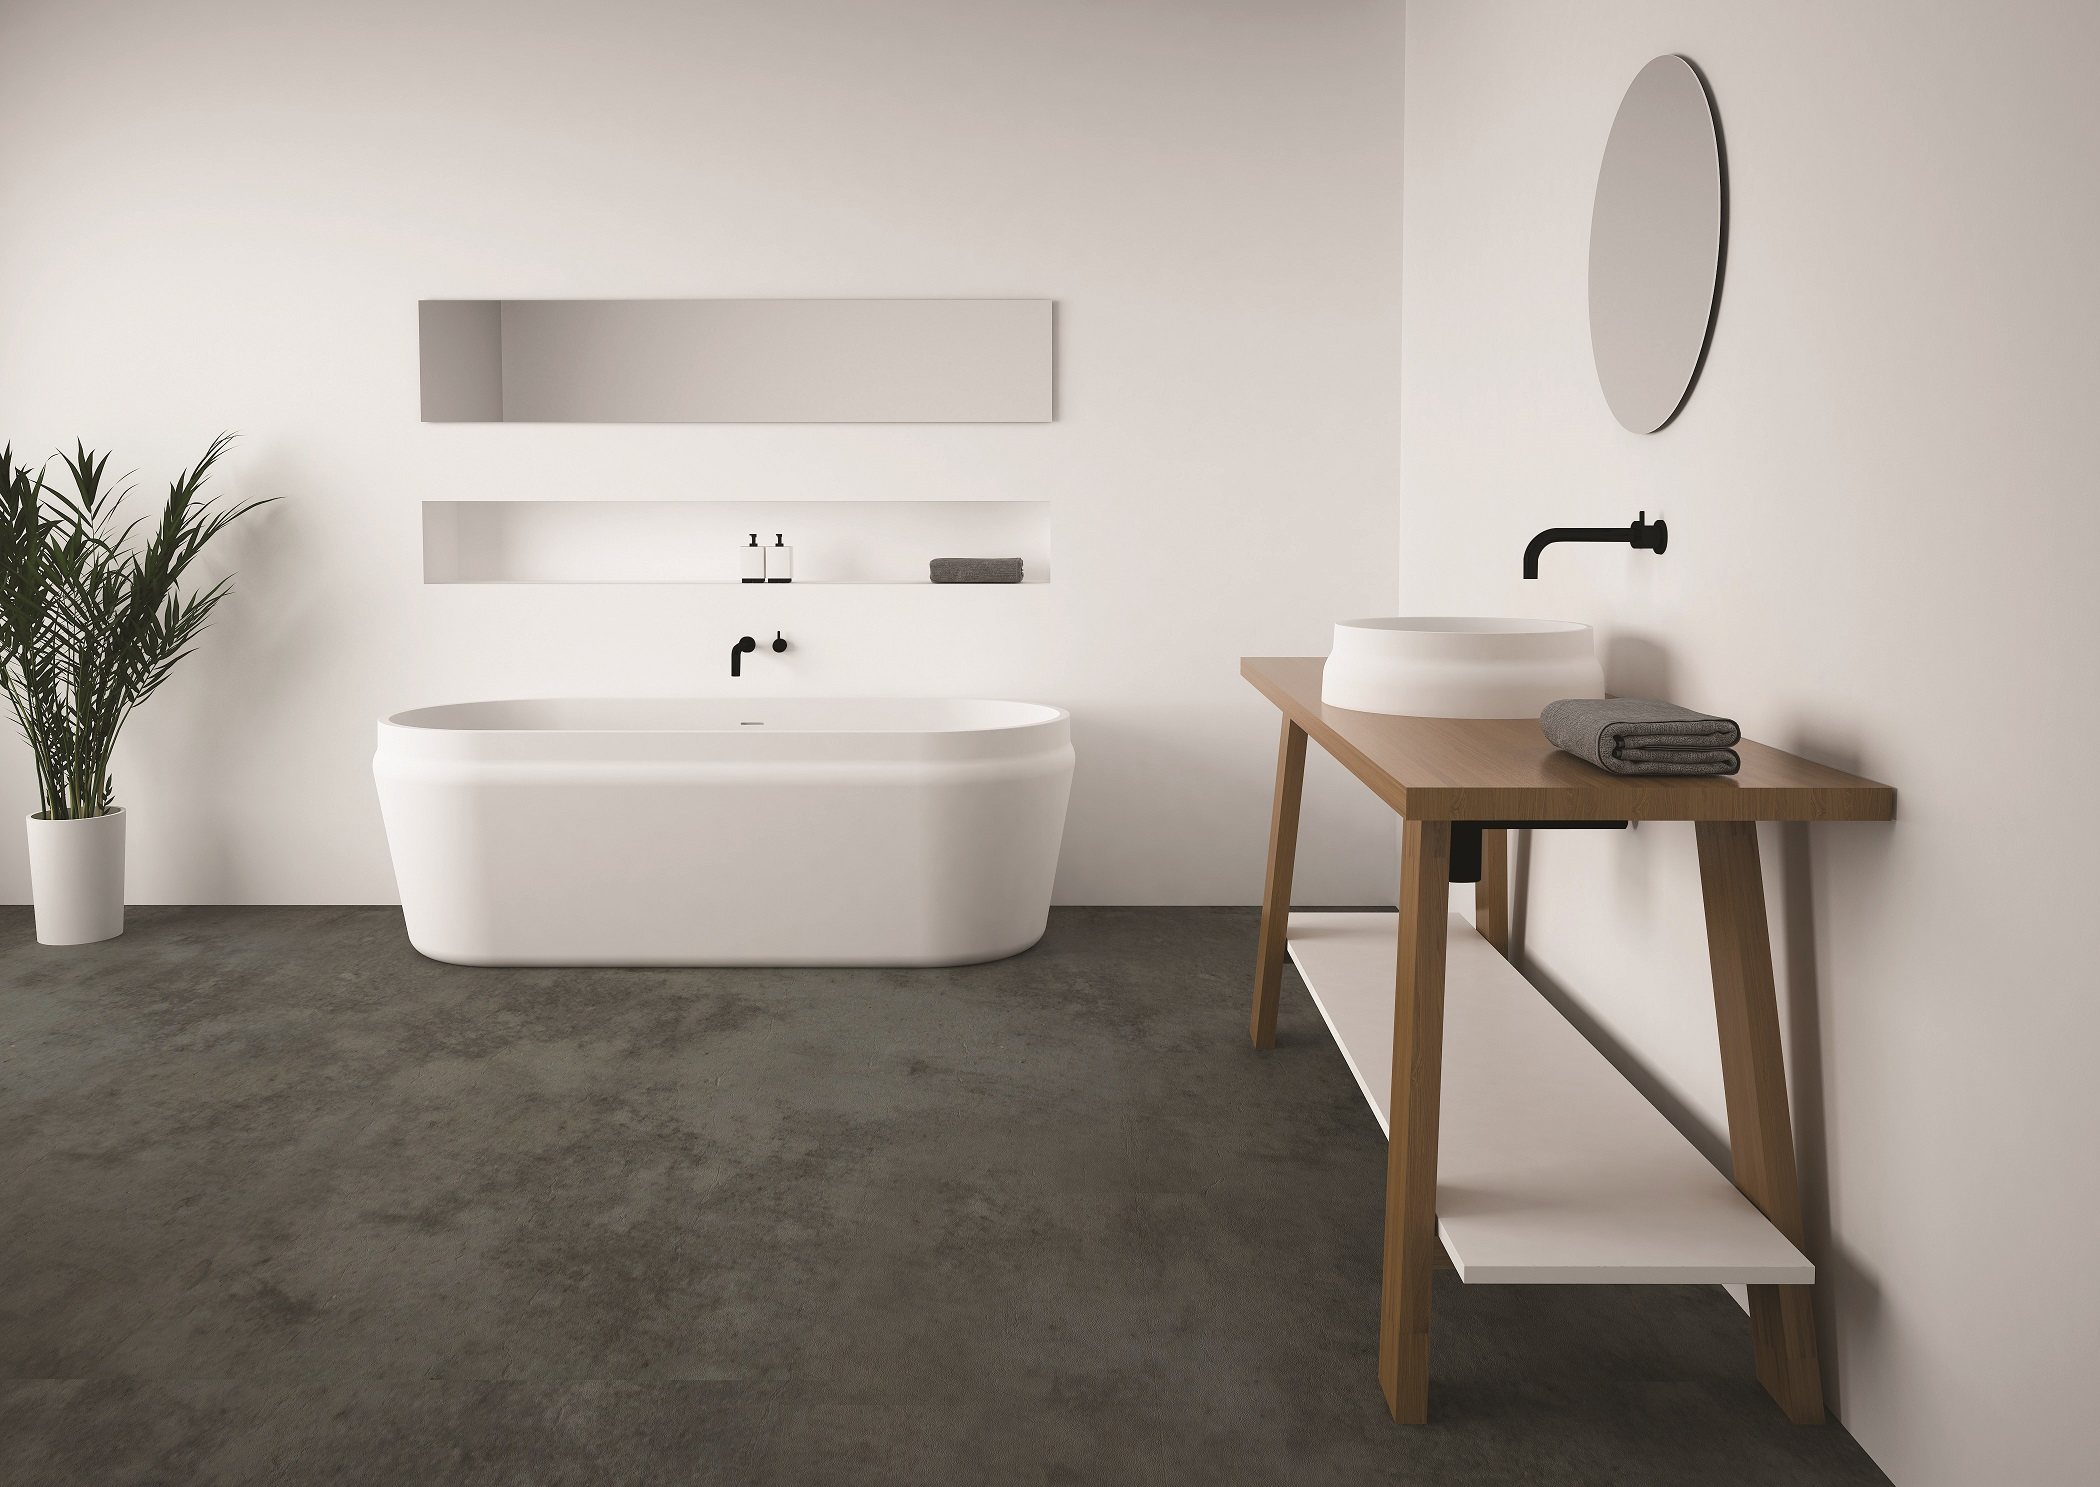 Omvivo Latis Bath and Basin